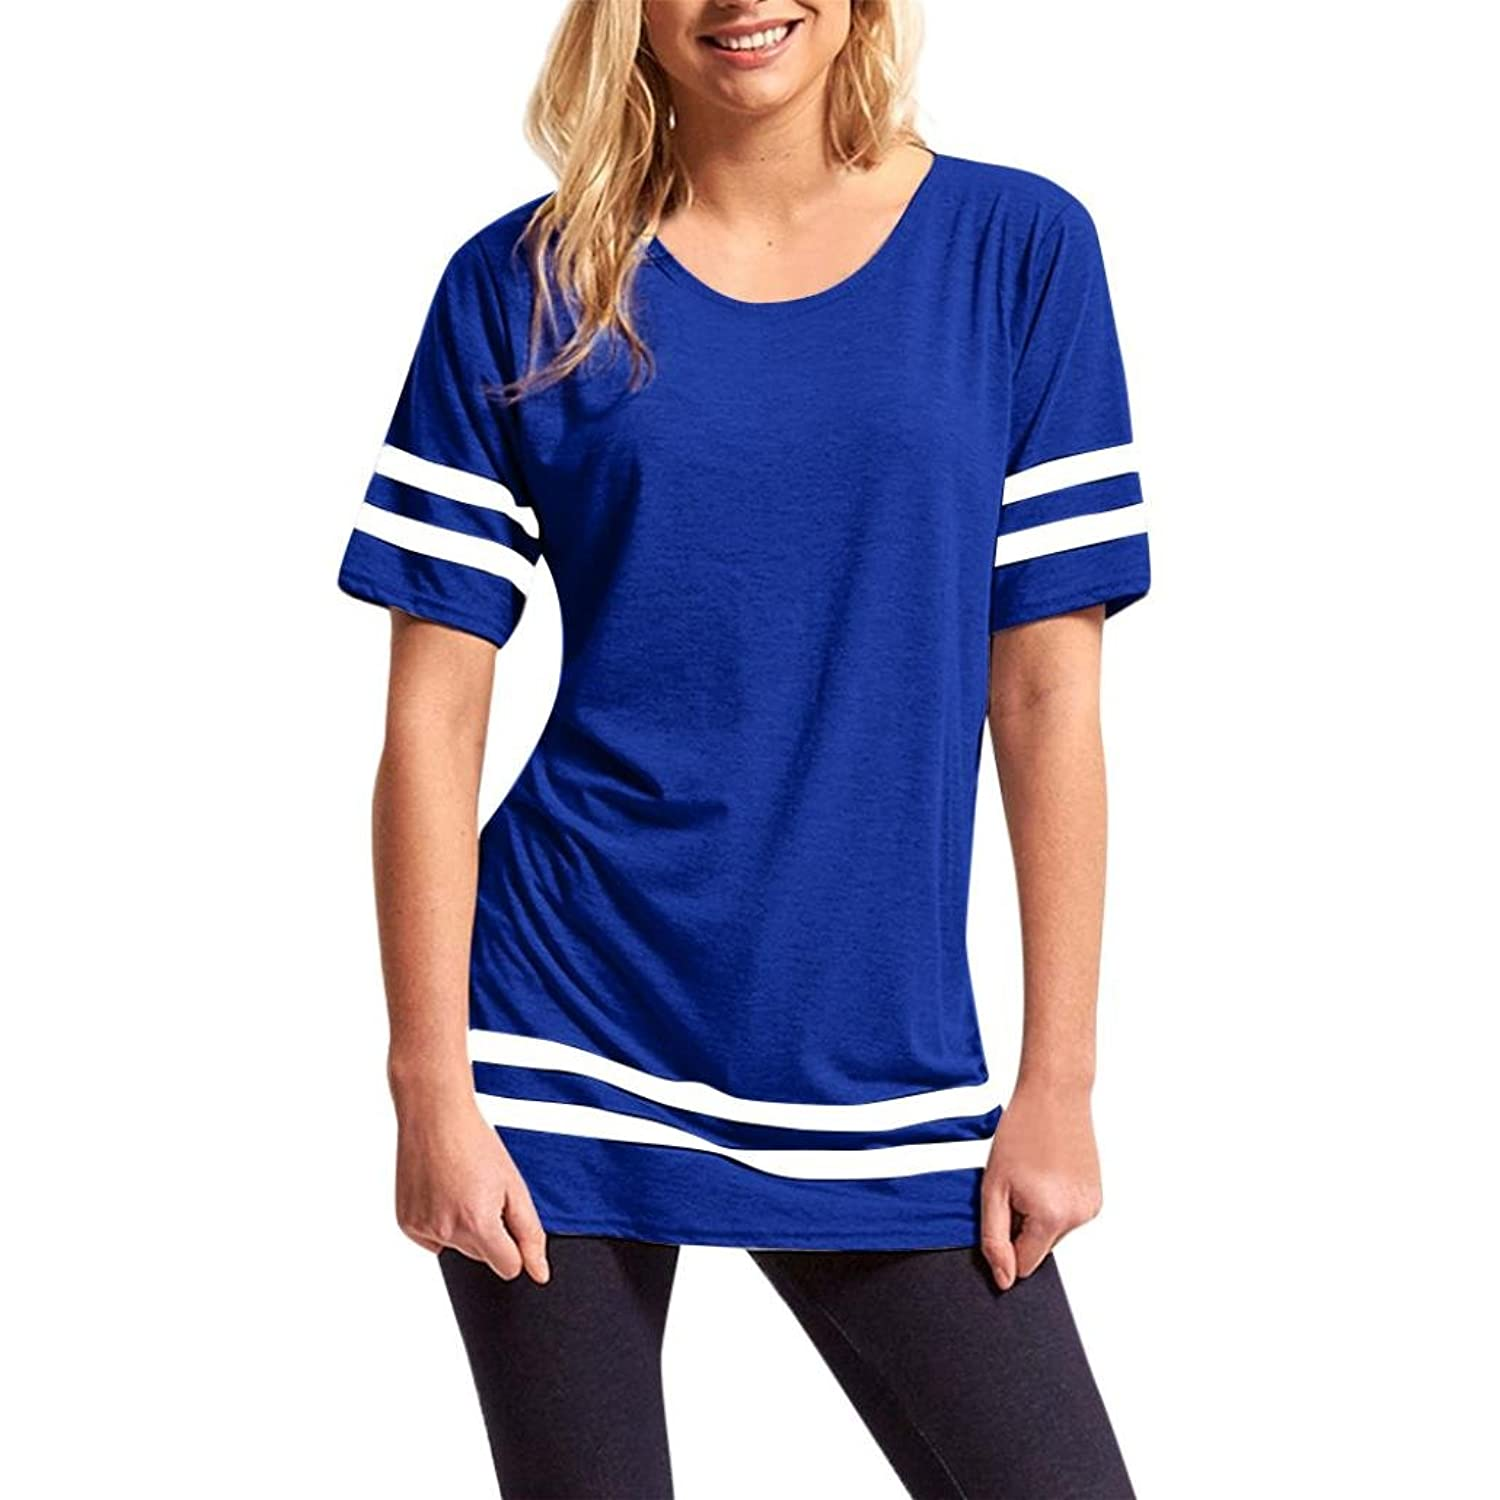 Amazon.com: DondPO Stripe Baggy Top Short Sleeve Sport Pullover T Shirts Blouse omens Tops Casual Blouse Summer Girls Clothes: Clothing